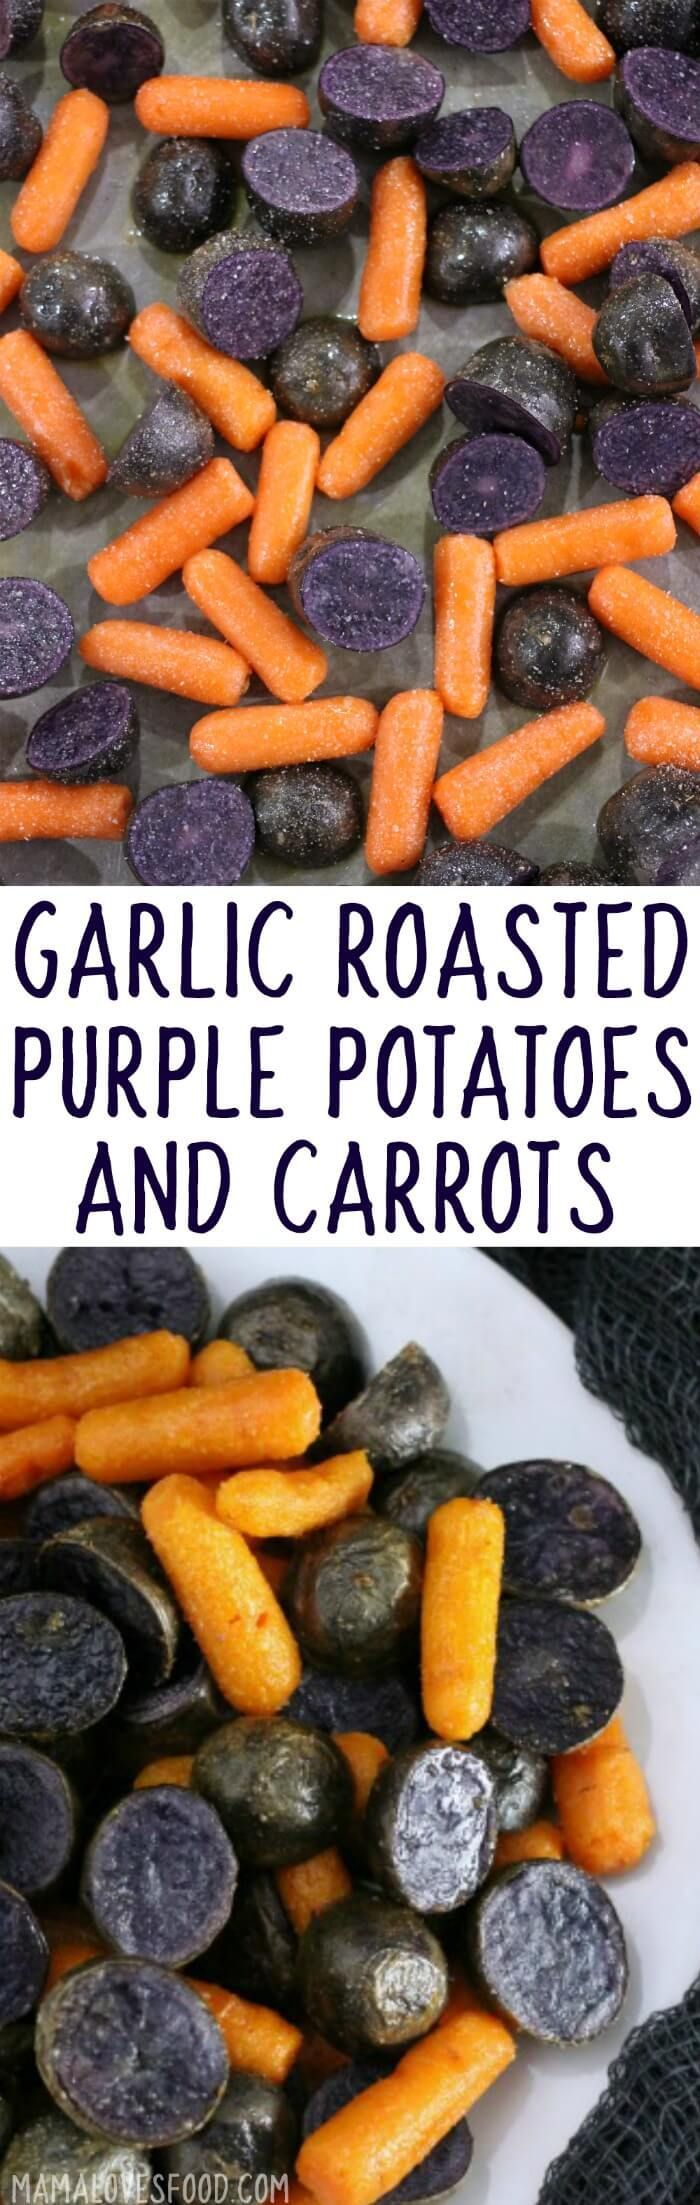 haha! the kids thought this was awesome! tasted great too :-)  GARLIC ROASTED PURPLE POTATOES AND CARROTS